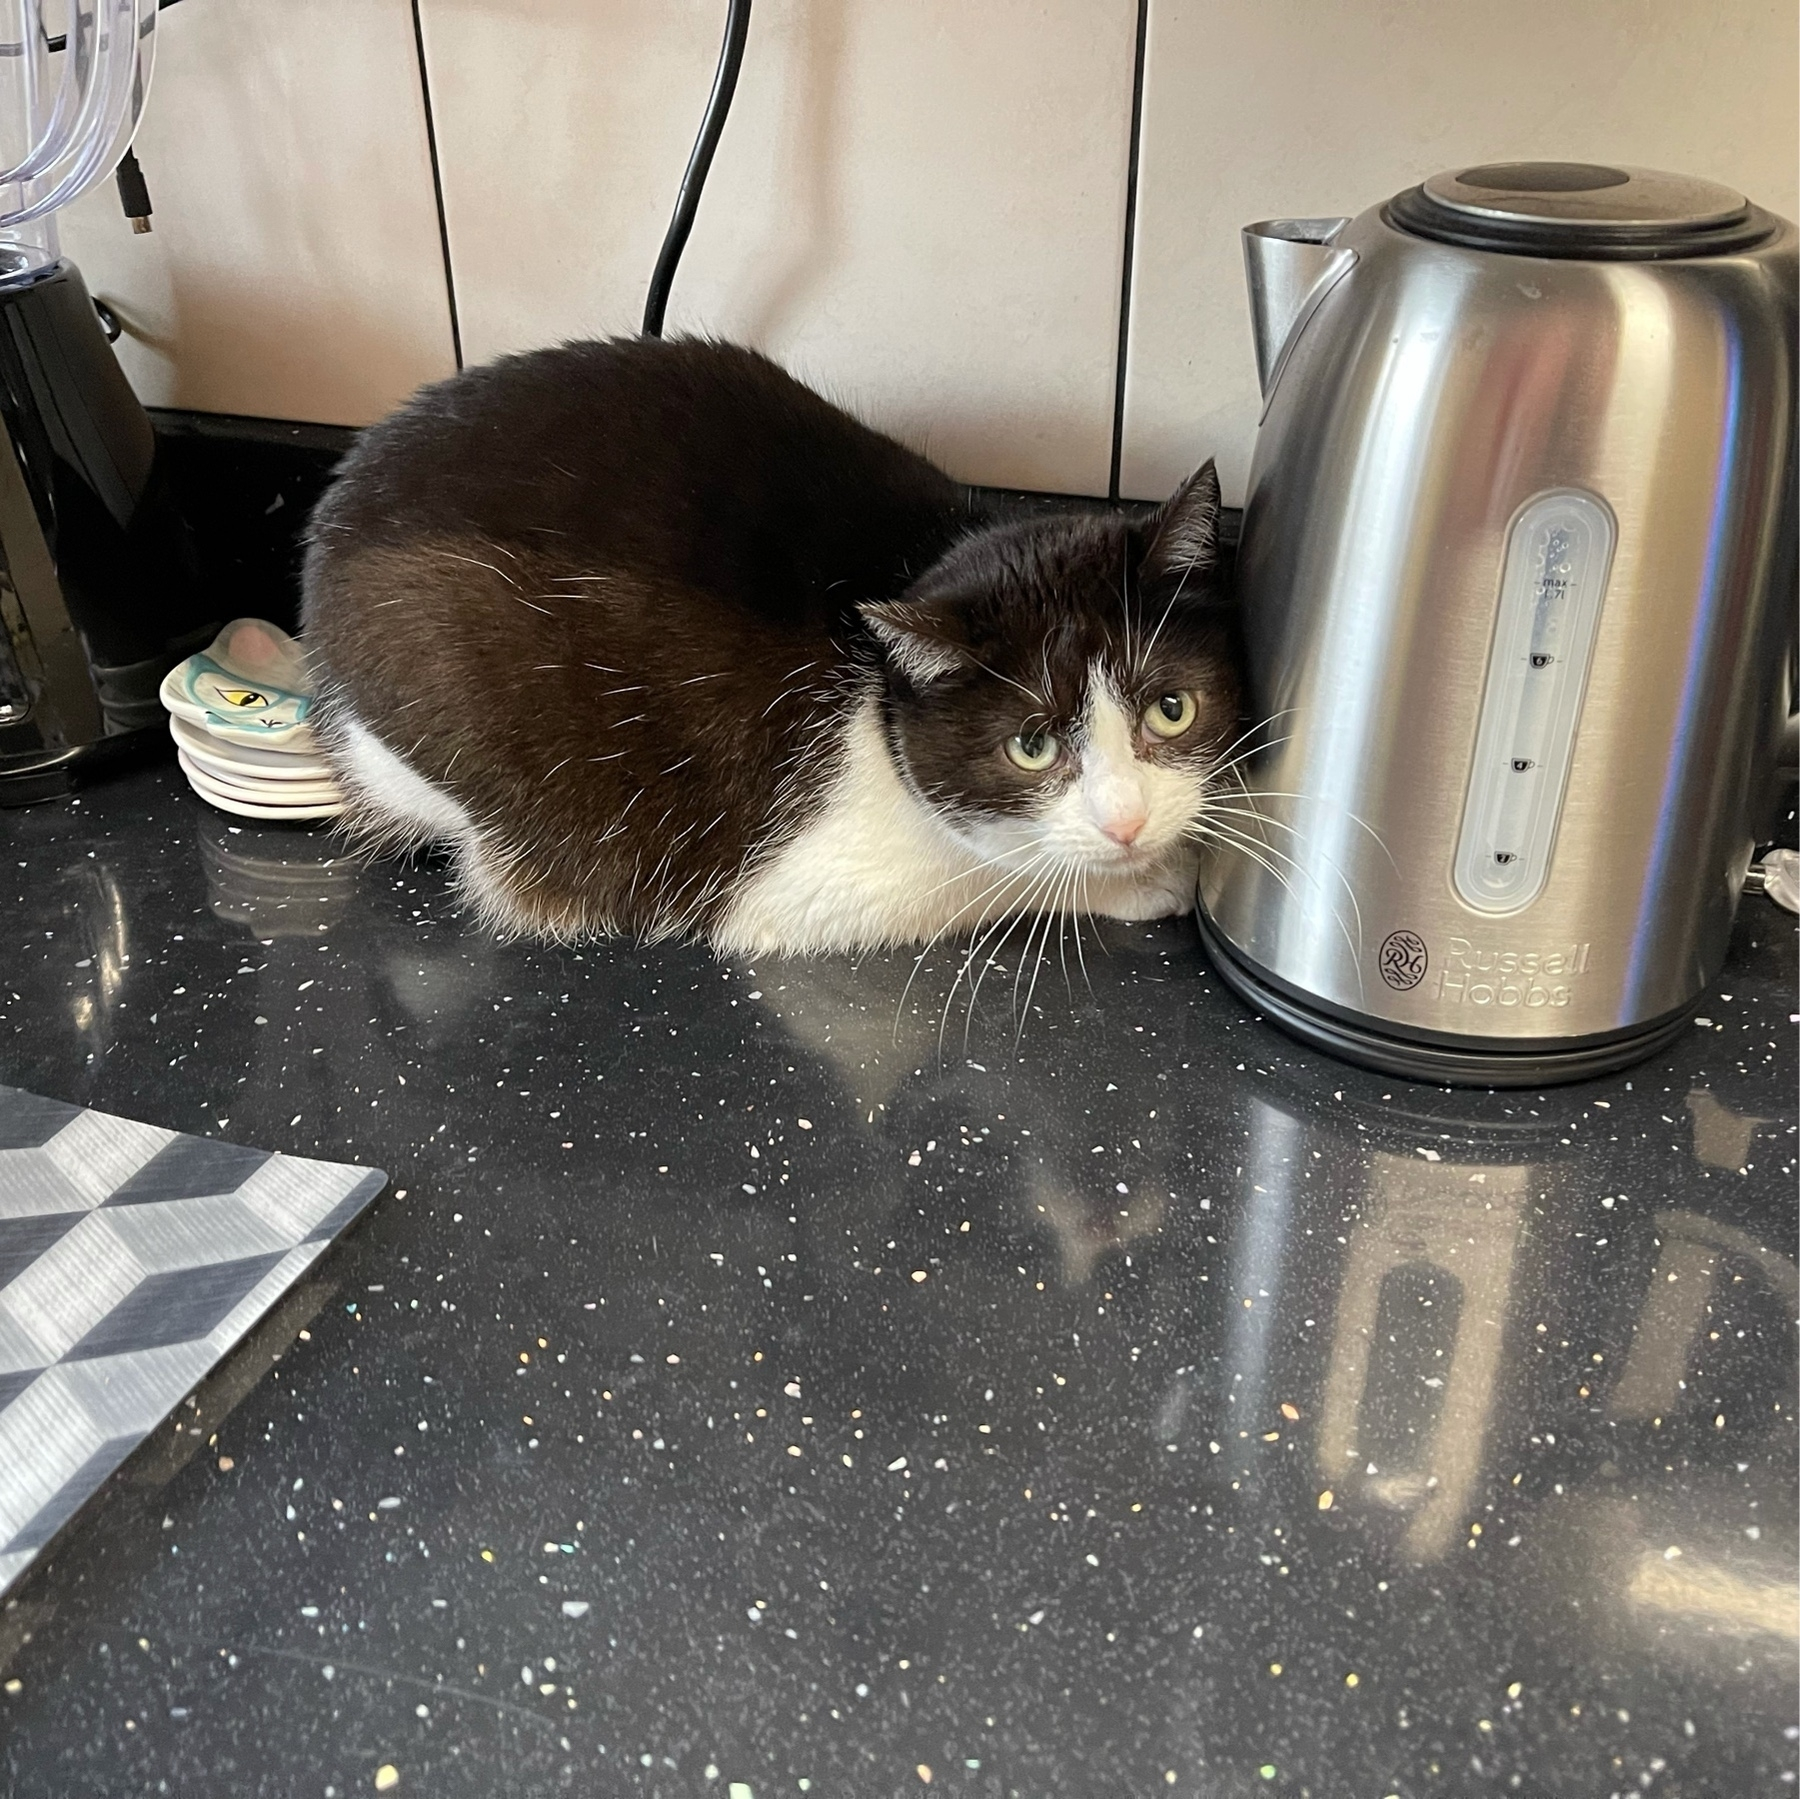 Black and white cat on a black kitchen counter, between the tea kettle and spoon rests.